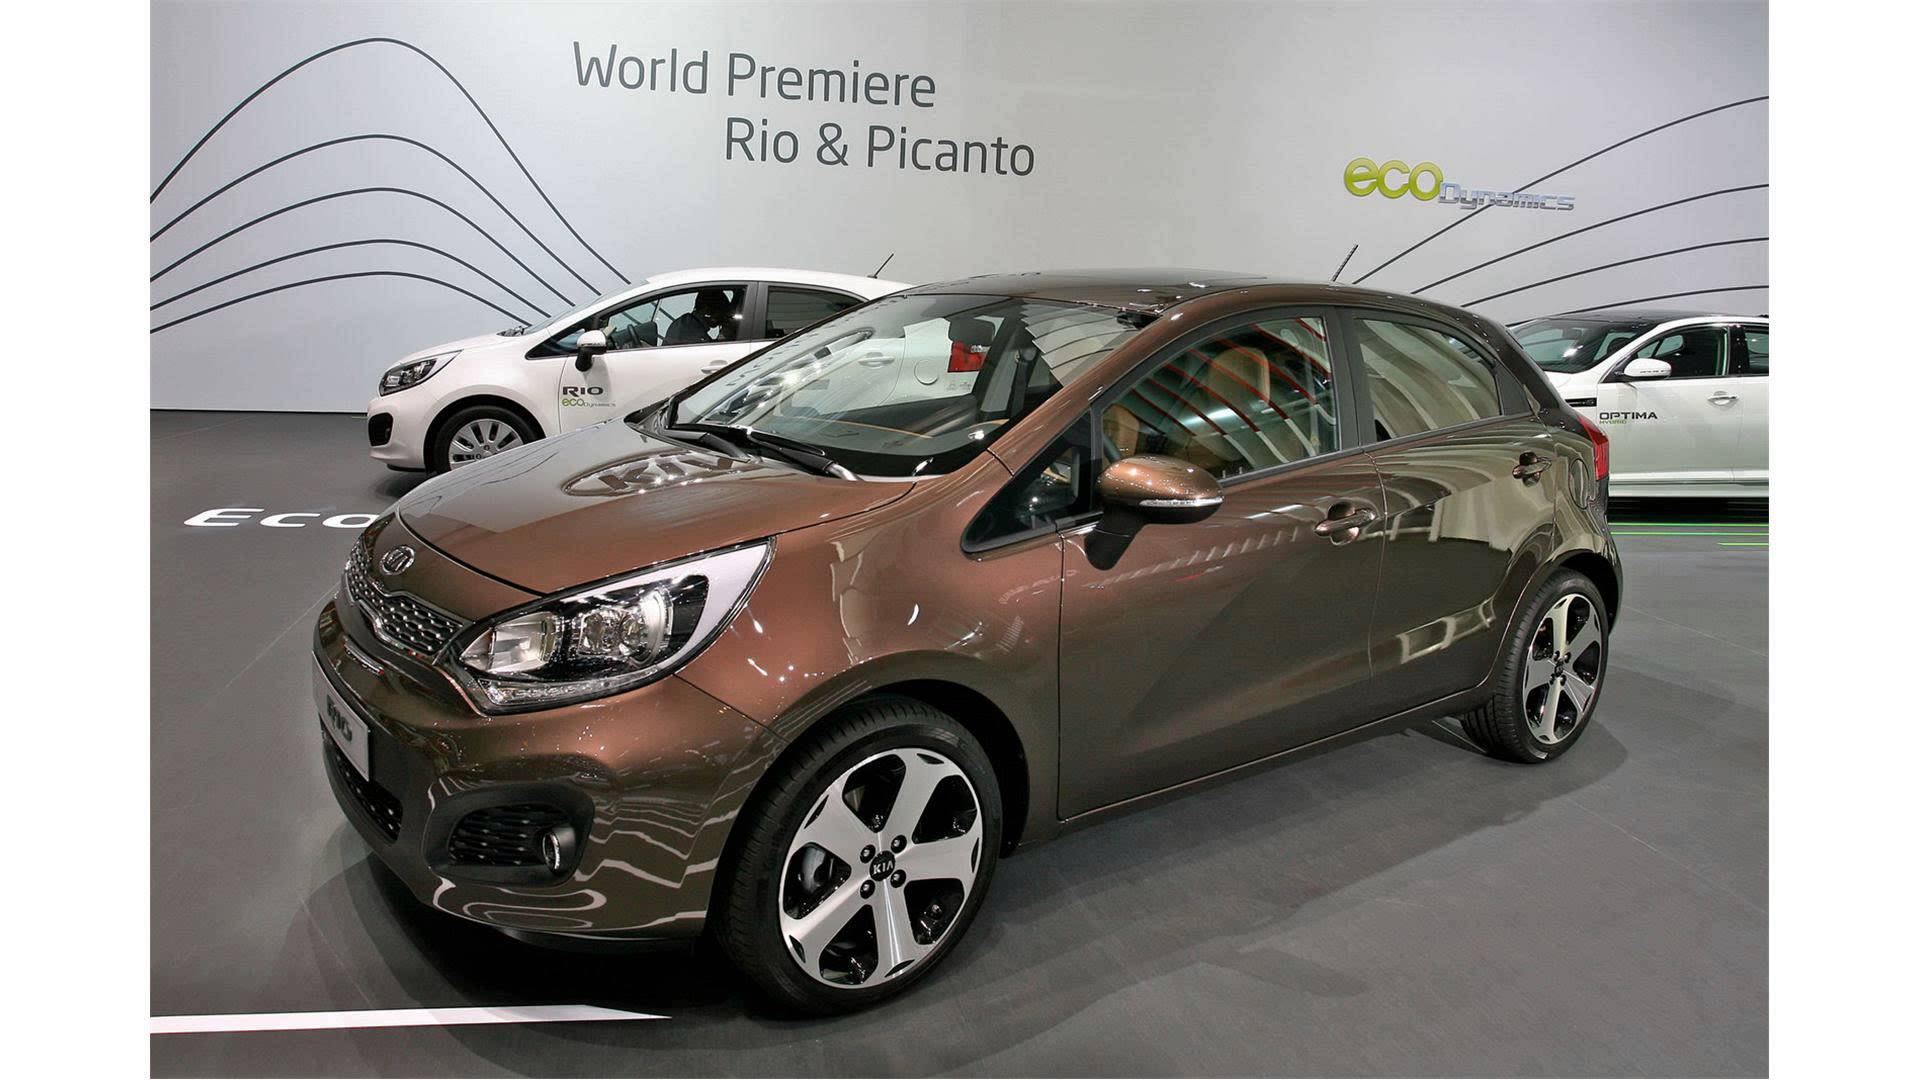 2015 kia rio iii 3 pictures information and specs. Black Bedroom Furniture Sets. Home Design Ideas